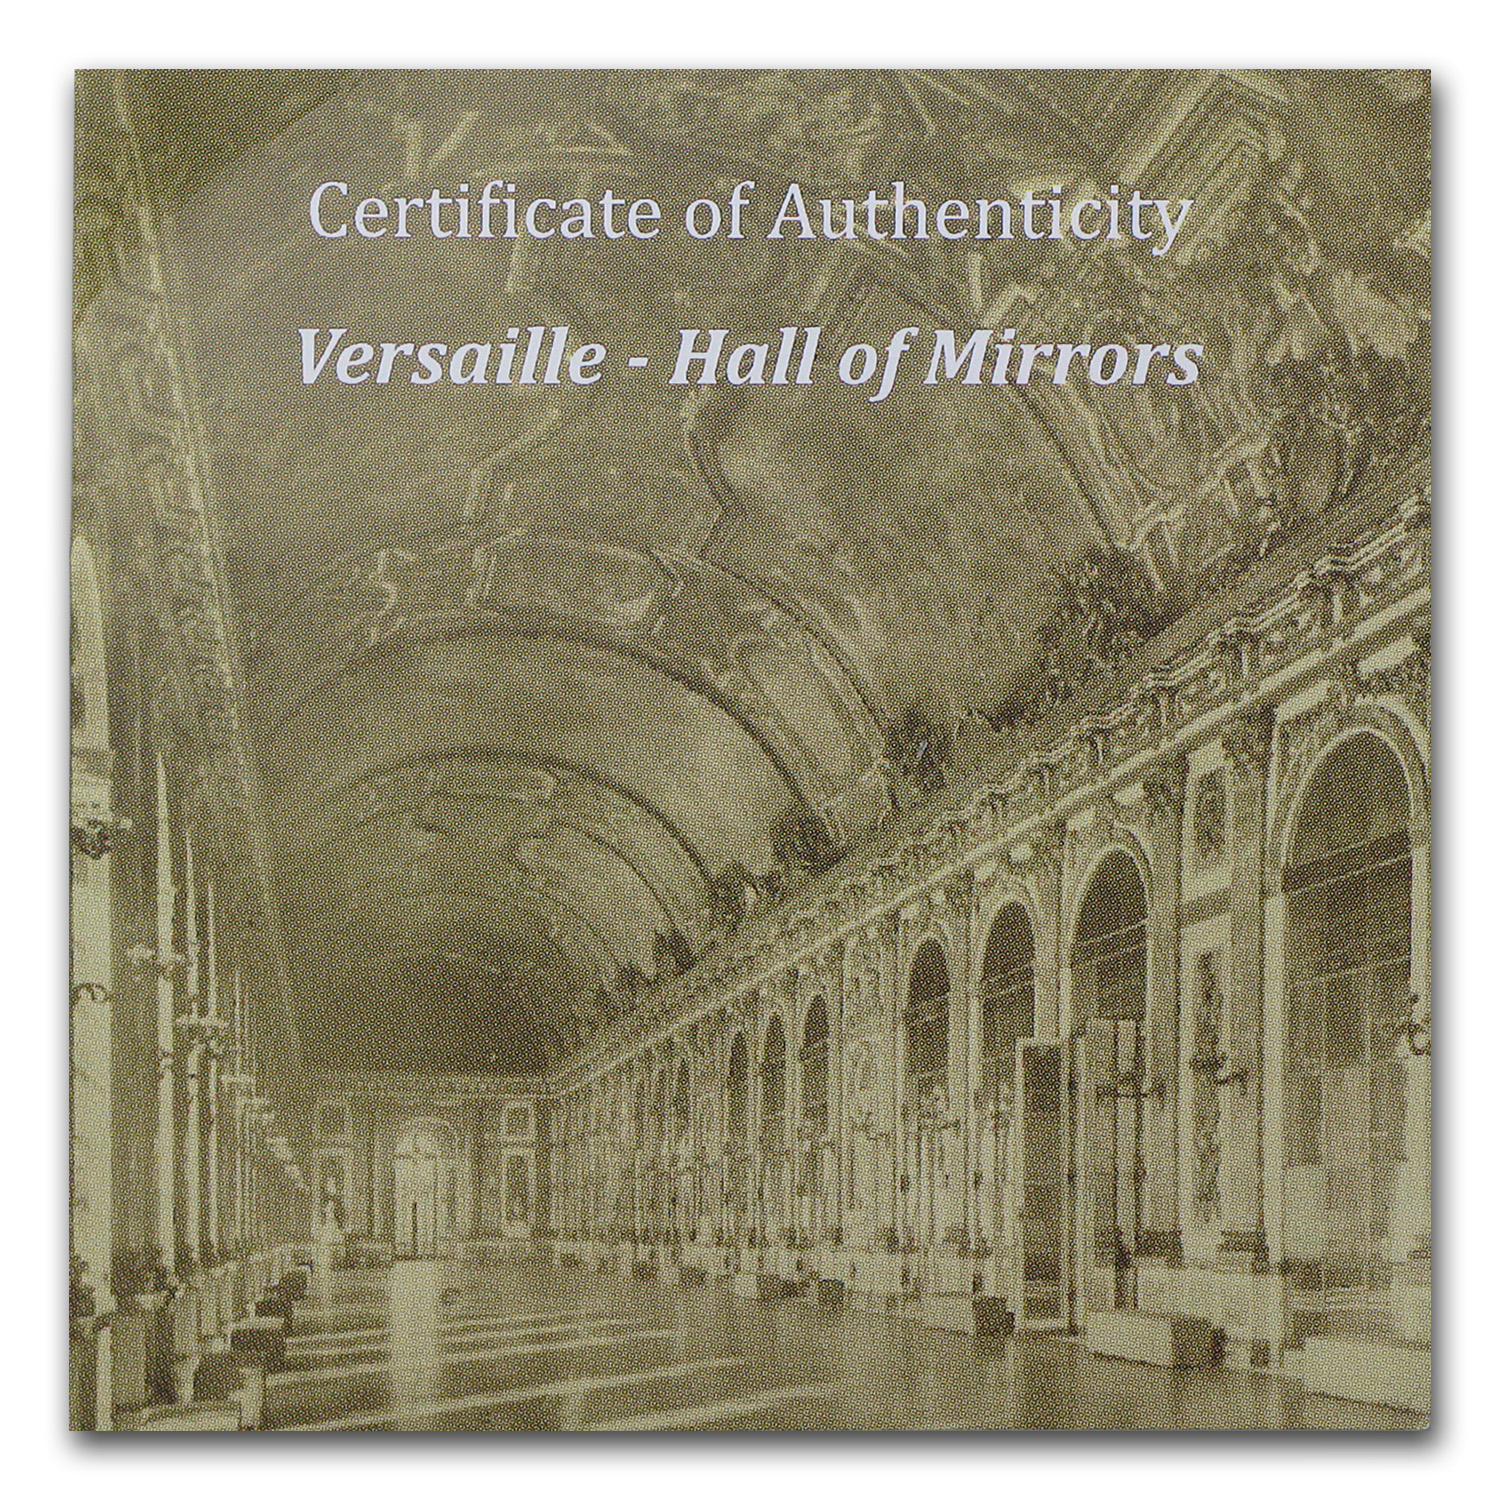 Palau 2013 Silver Proof $10 Versailles - Hall of Mirrors